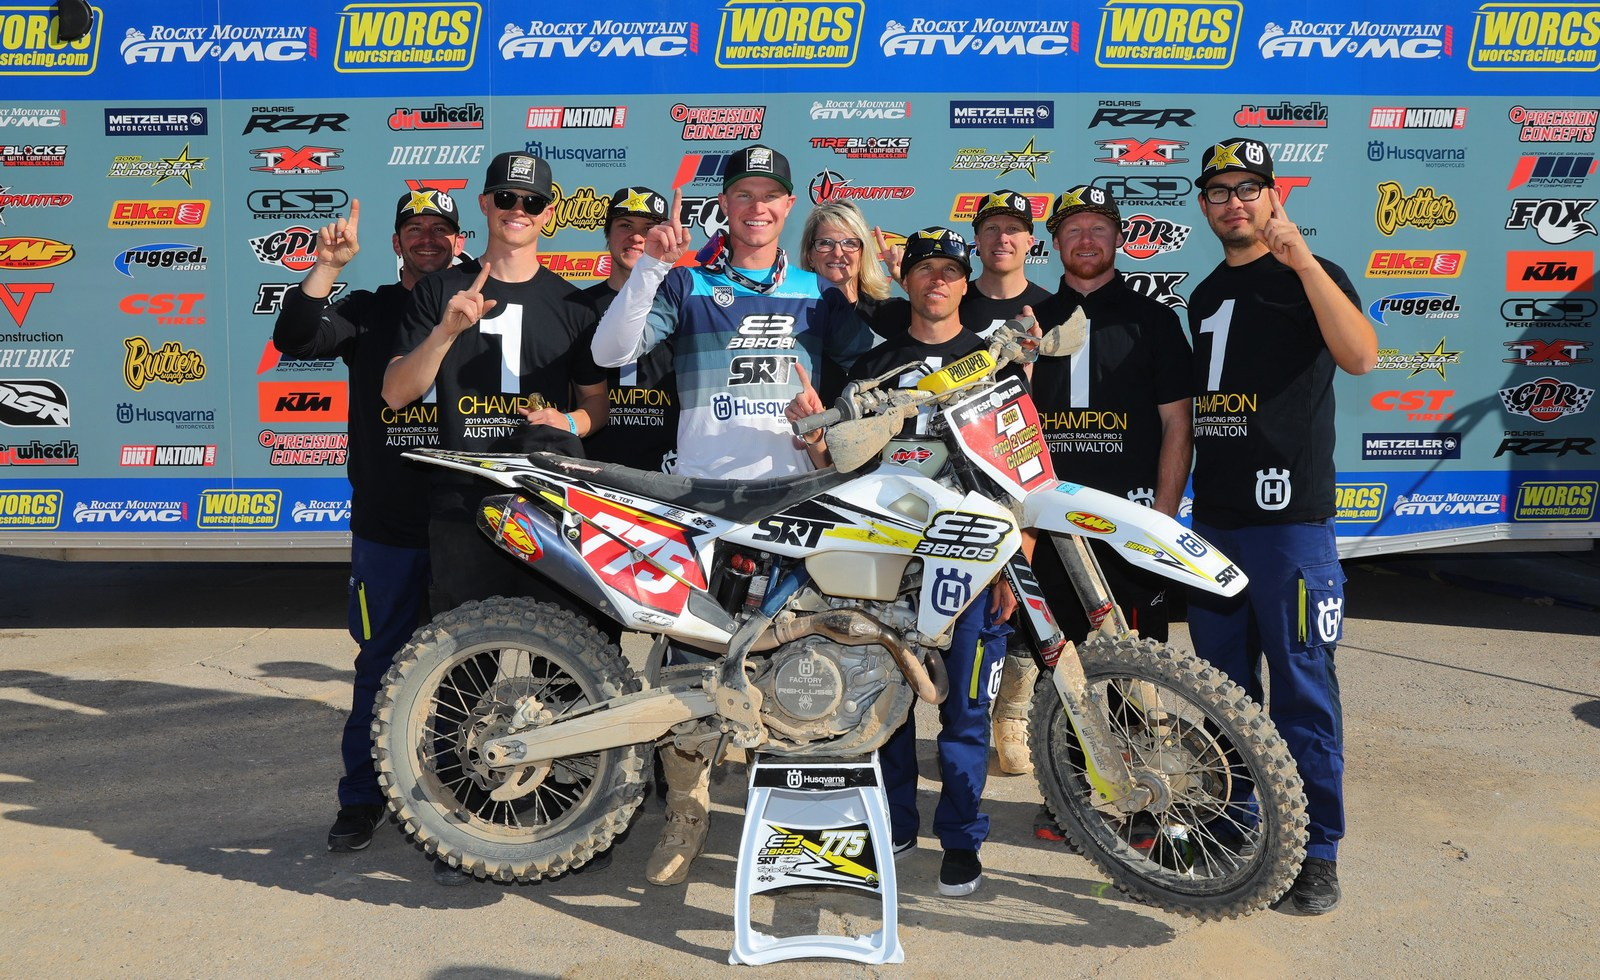 11-austin-walton-champion-motorcycle-worcs-racing